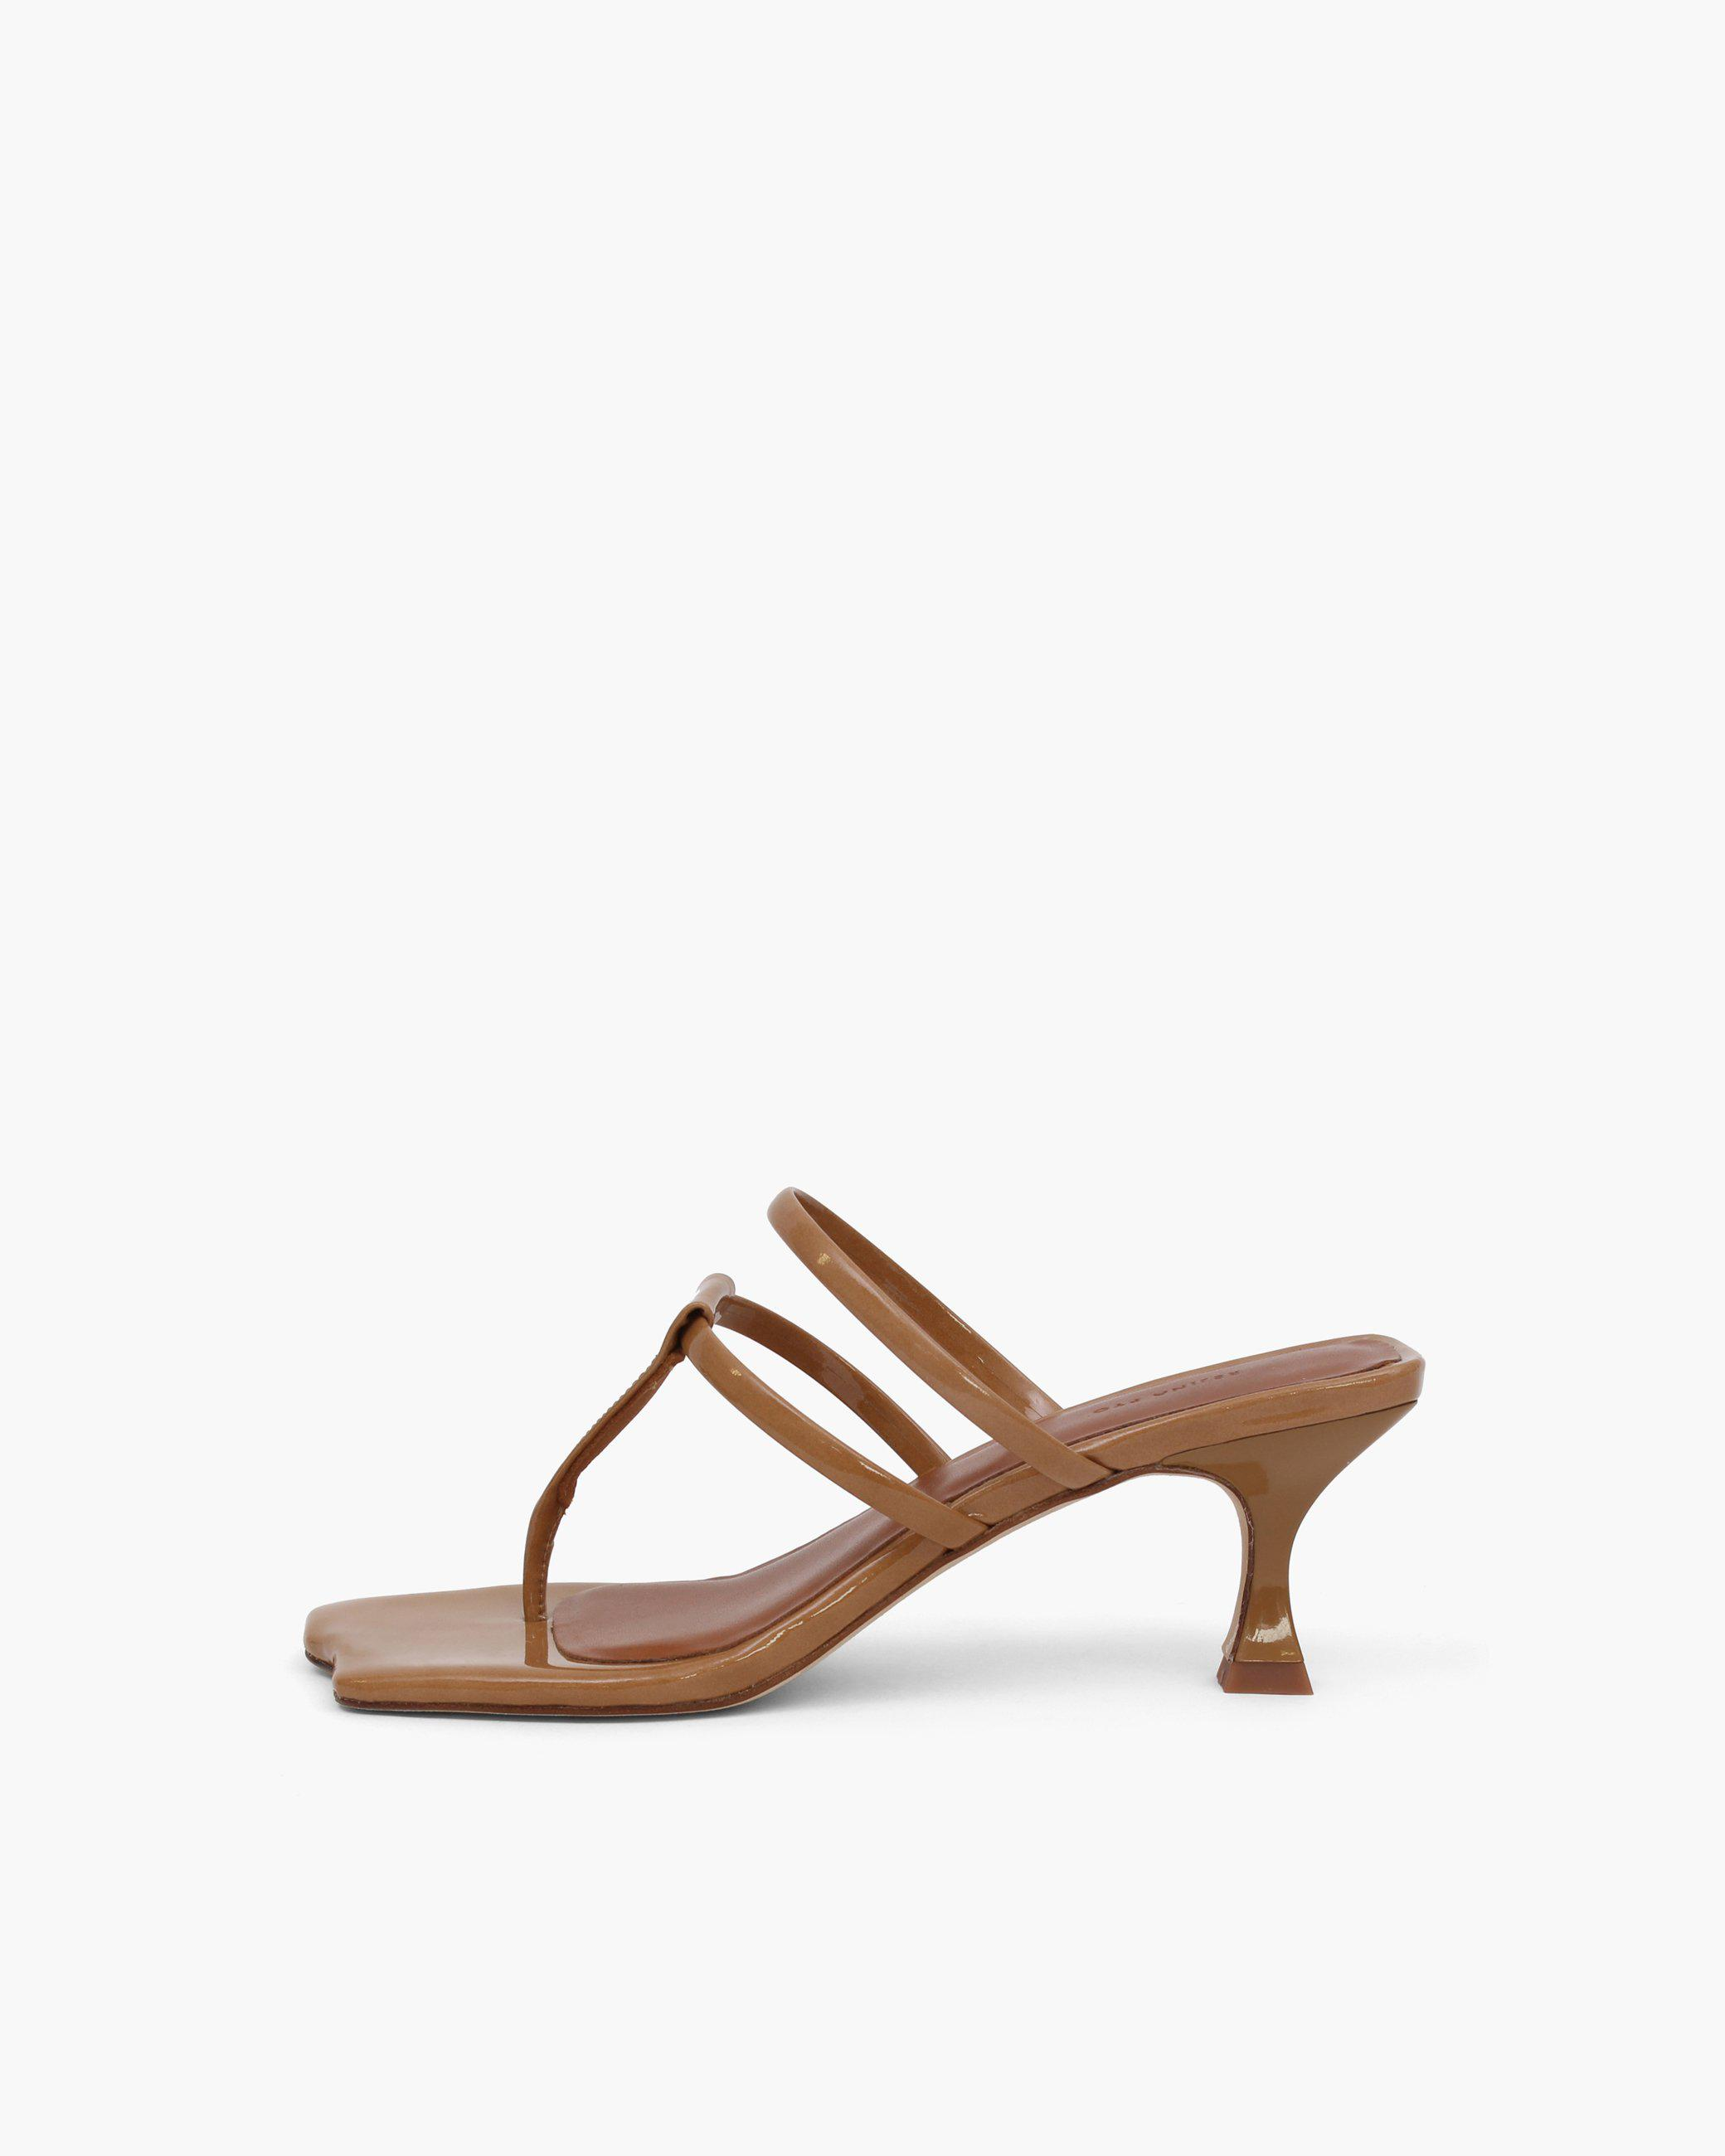 Allie Sandals Patent Leather Brown